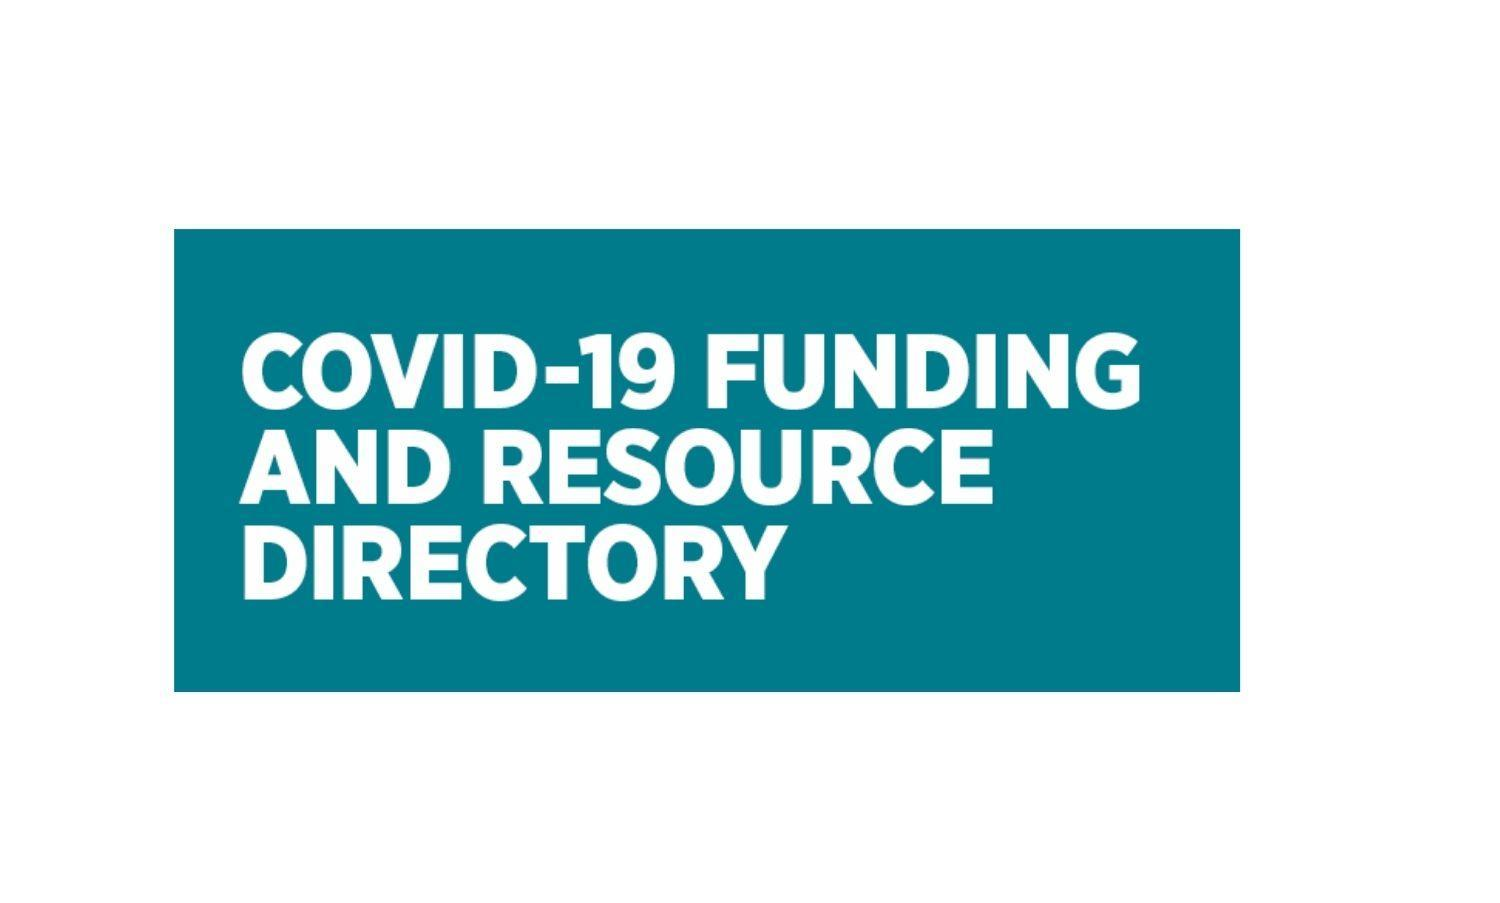 """Blue background, white text - """"Covid-19 Funding and Resource Directory"""